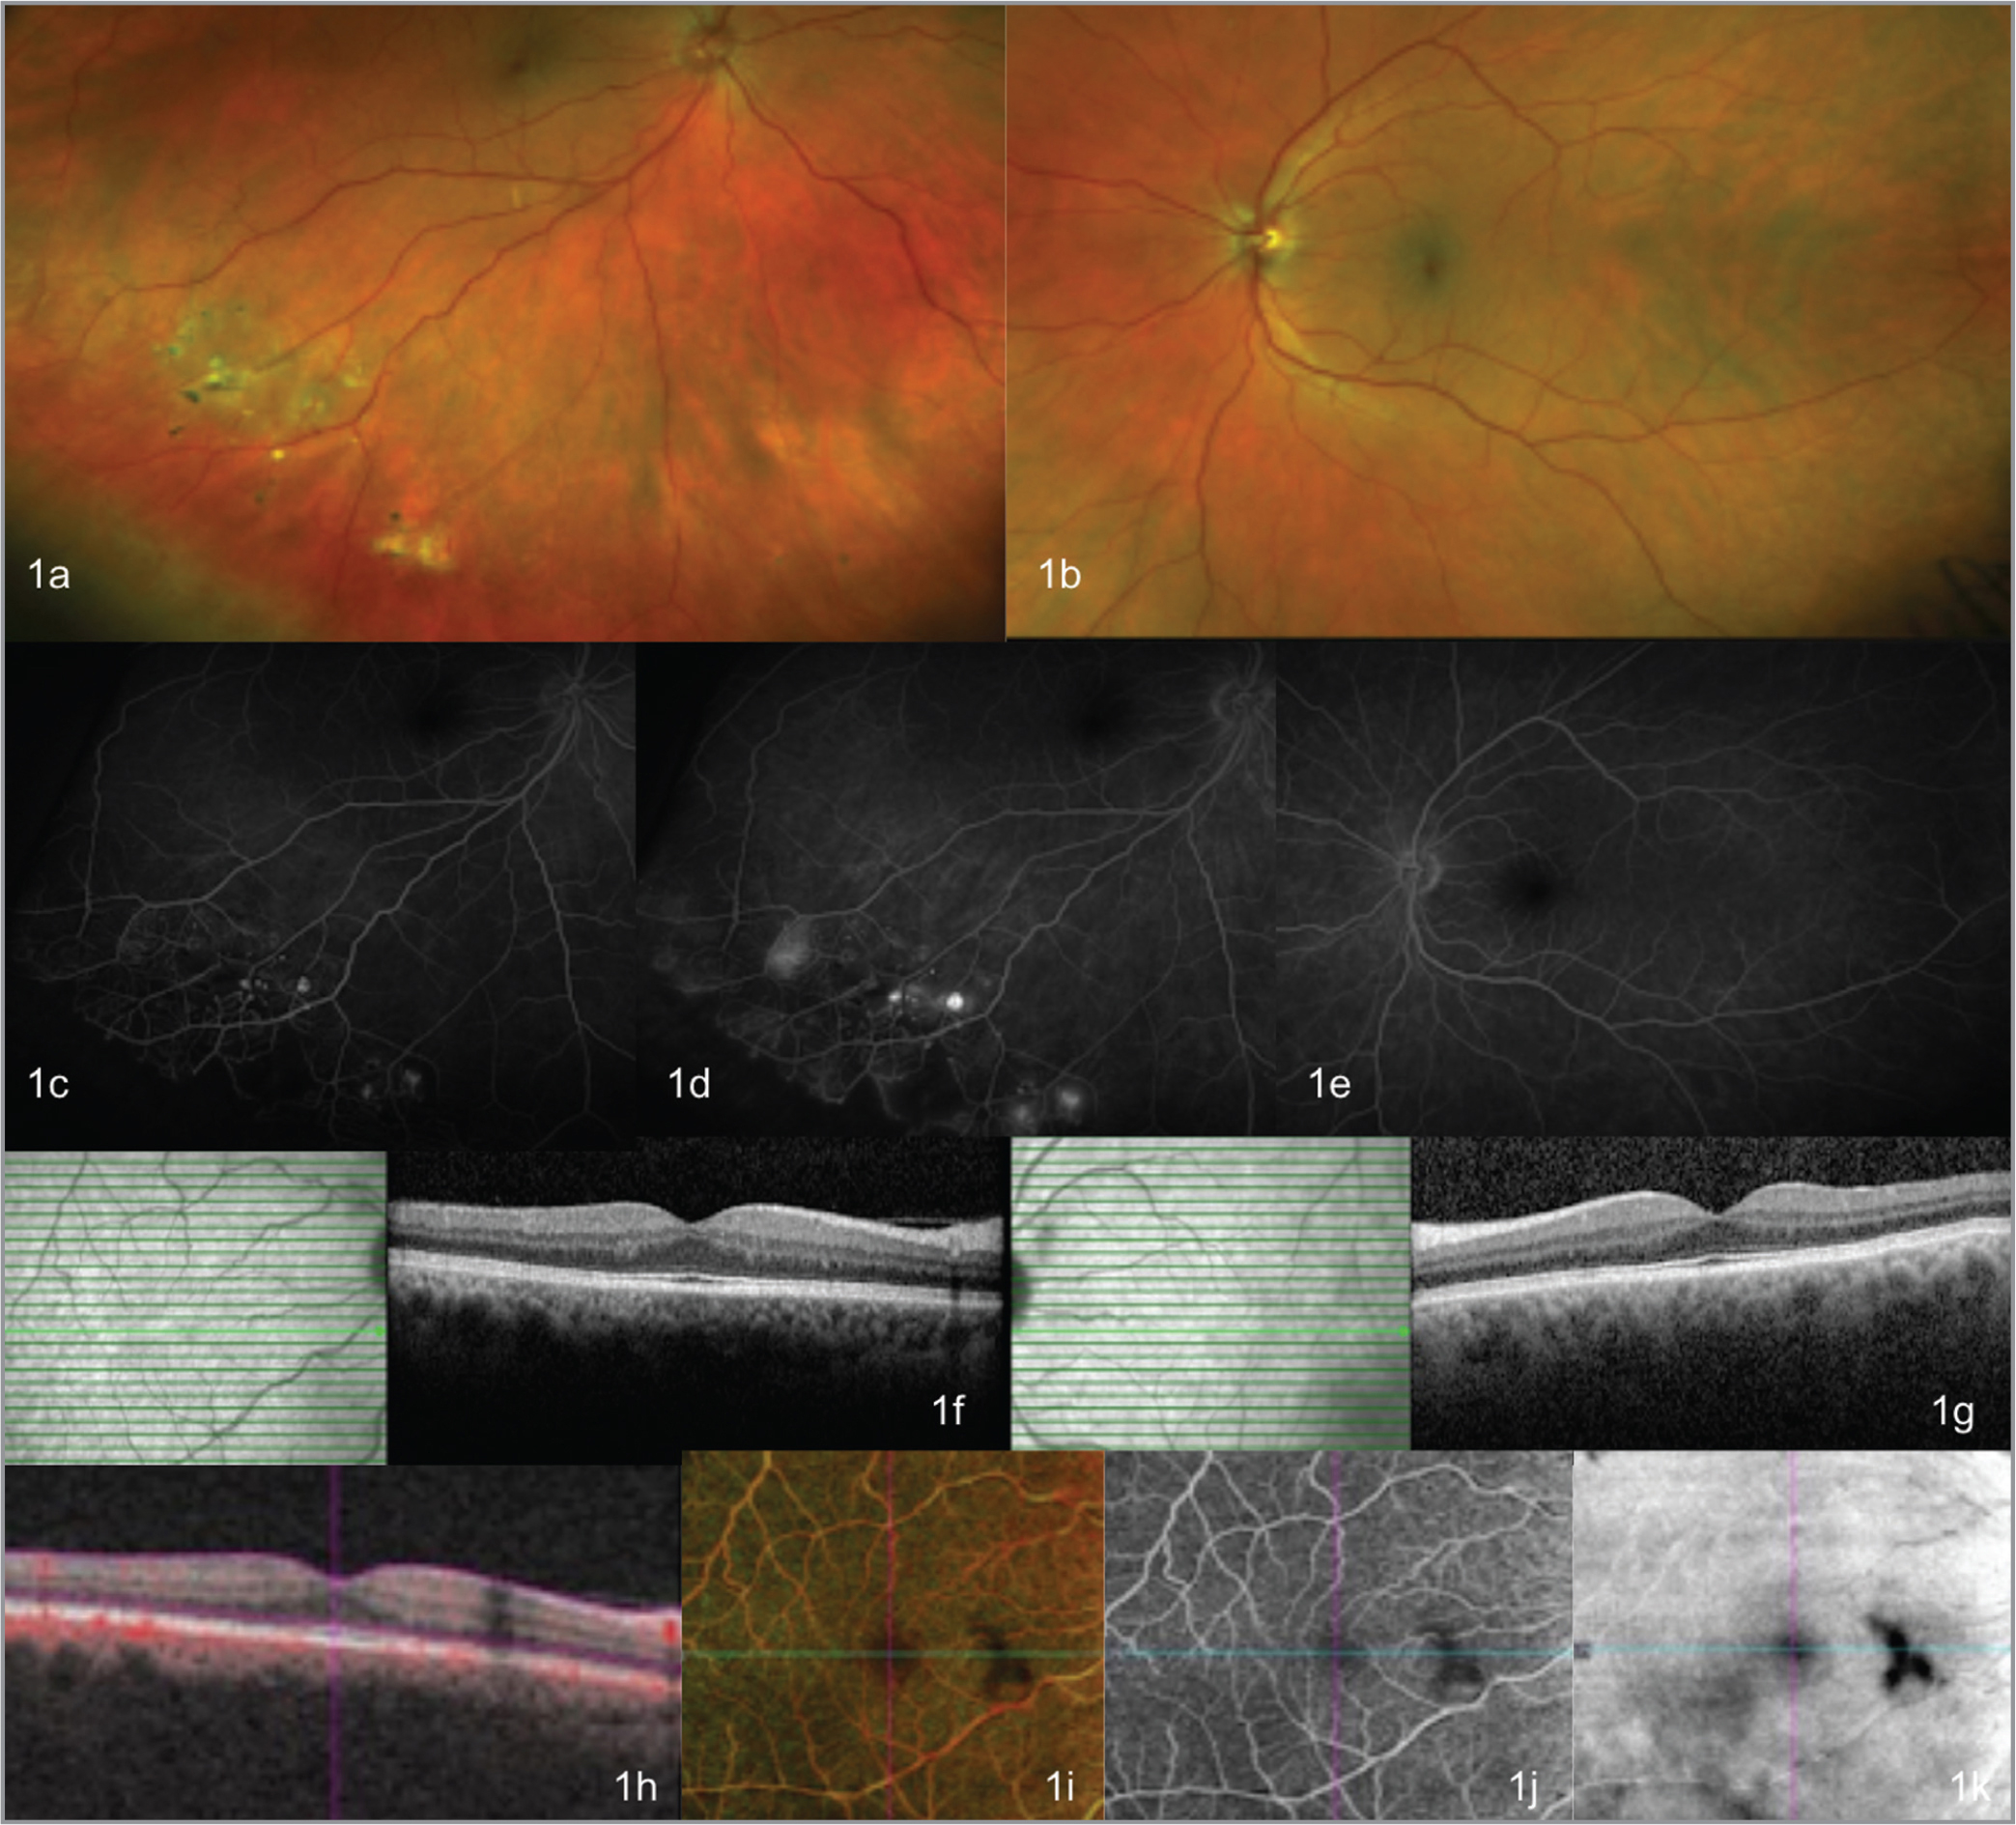 Multimodal ophthalmic imaging upon presentation showing microaneurysmal vascular changes and exudation on fundus photography (a), with peripheral capillary nonperfusion and aneurysms on fluorescein angiography (FA) (c, d), but a normal optical coherence tomography (OCT) (f) and OCT angiography (h–k) in the right eye. Fundus photography (b), FA (e), and OCT (g) were unremarkable in the left eye.